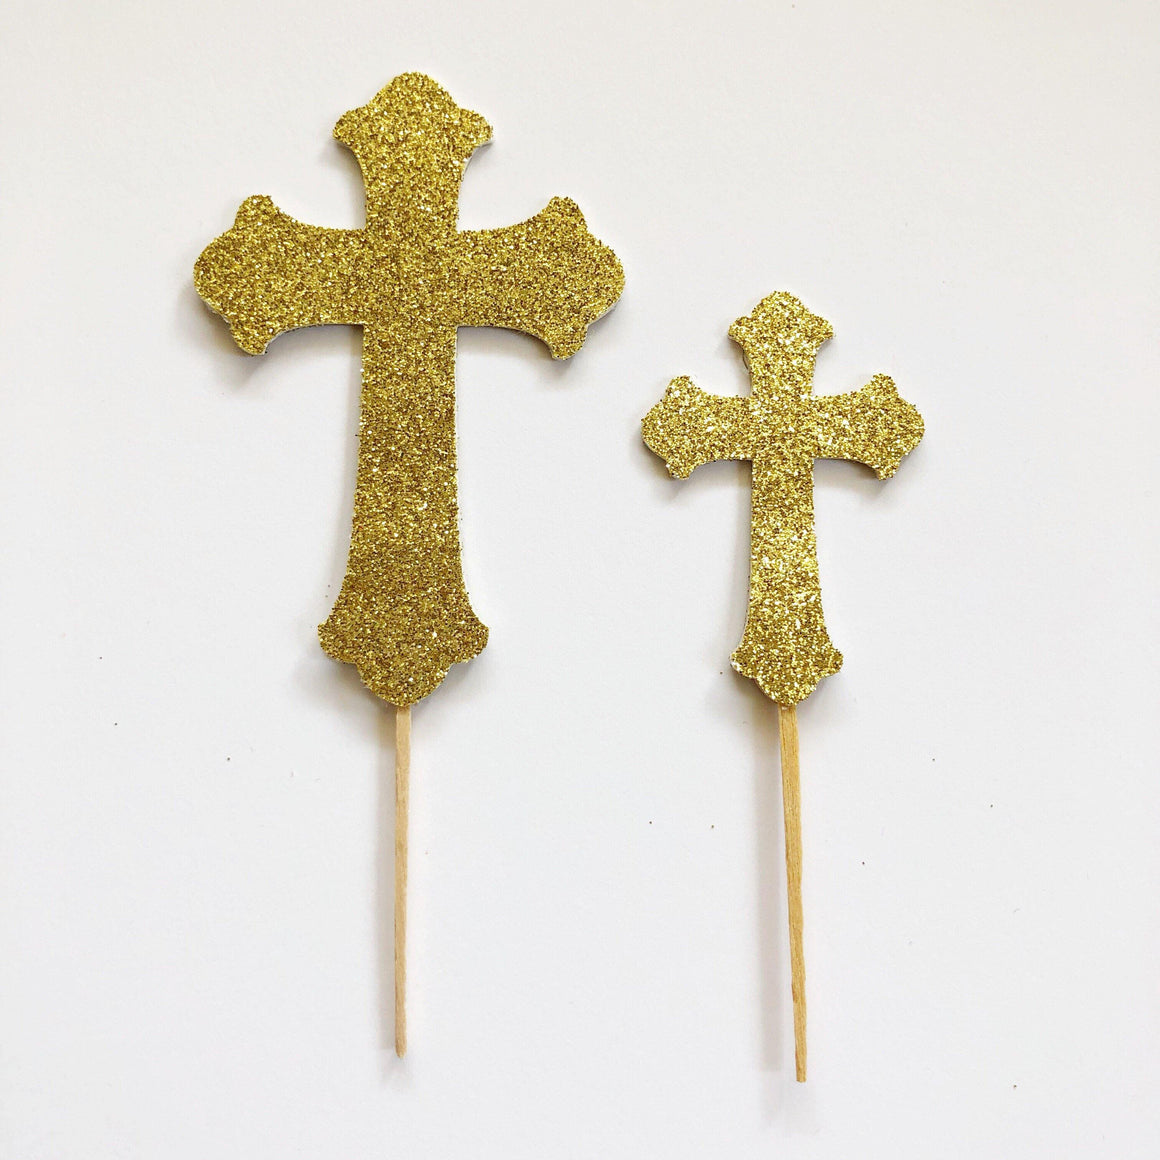 PARTY PICKS - CROSS GLITTER LARGE 2-SIDED, Picks + Toppers, BON + CO - Bon + Co. Party Studio